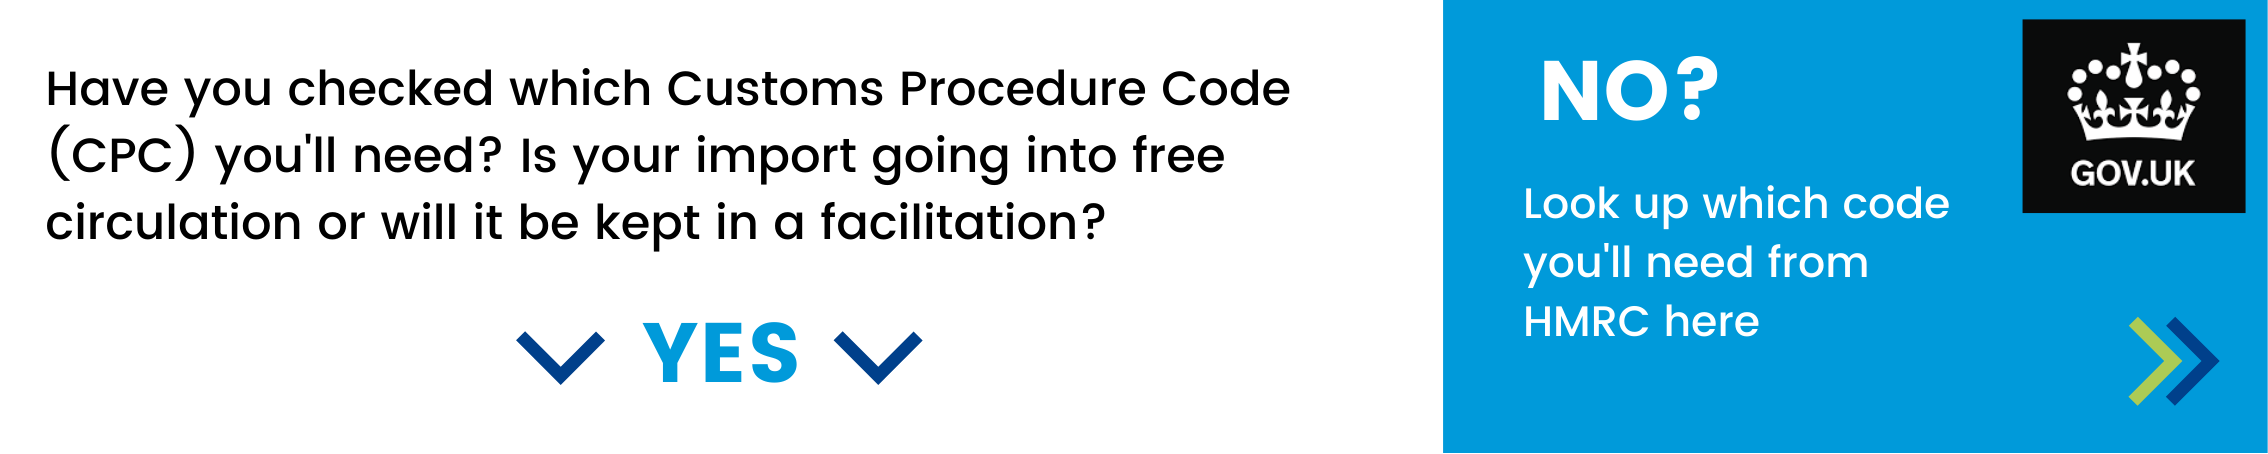 Have you checked which Customs Procedure Code (CPC) you'll need? Is your import going into free circulation or will it be kept in a facilitation? If not - click here to look up which doe you'll need from HMRC